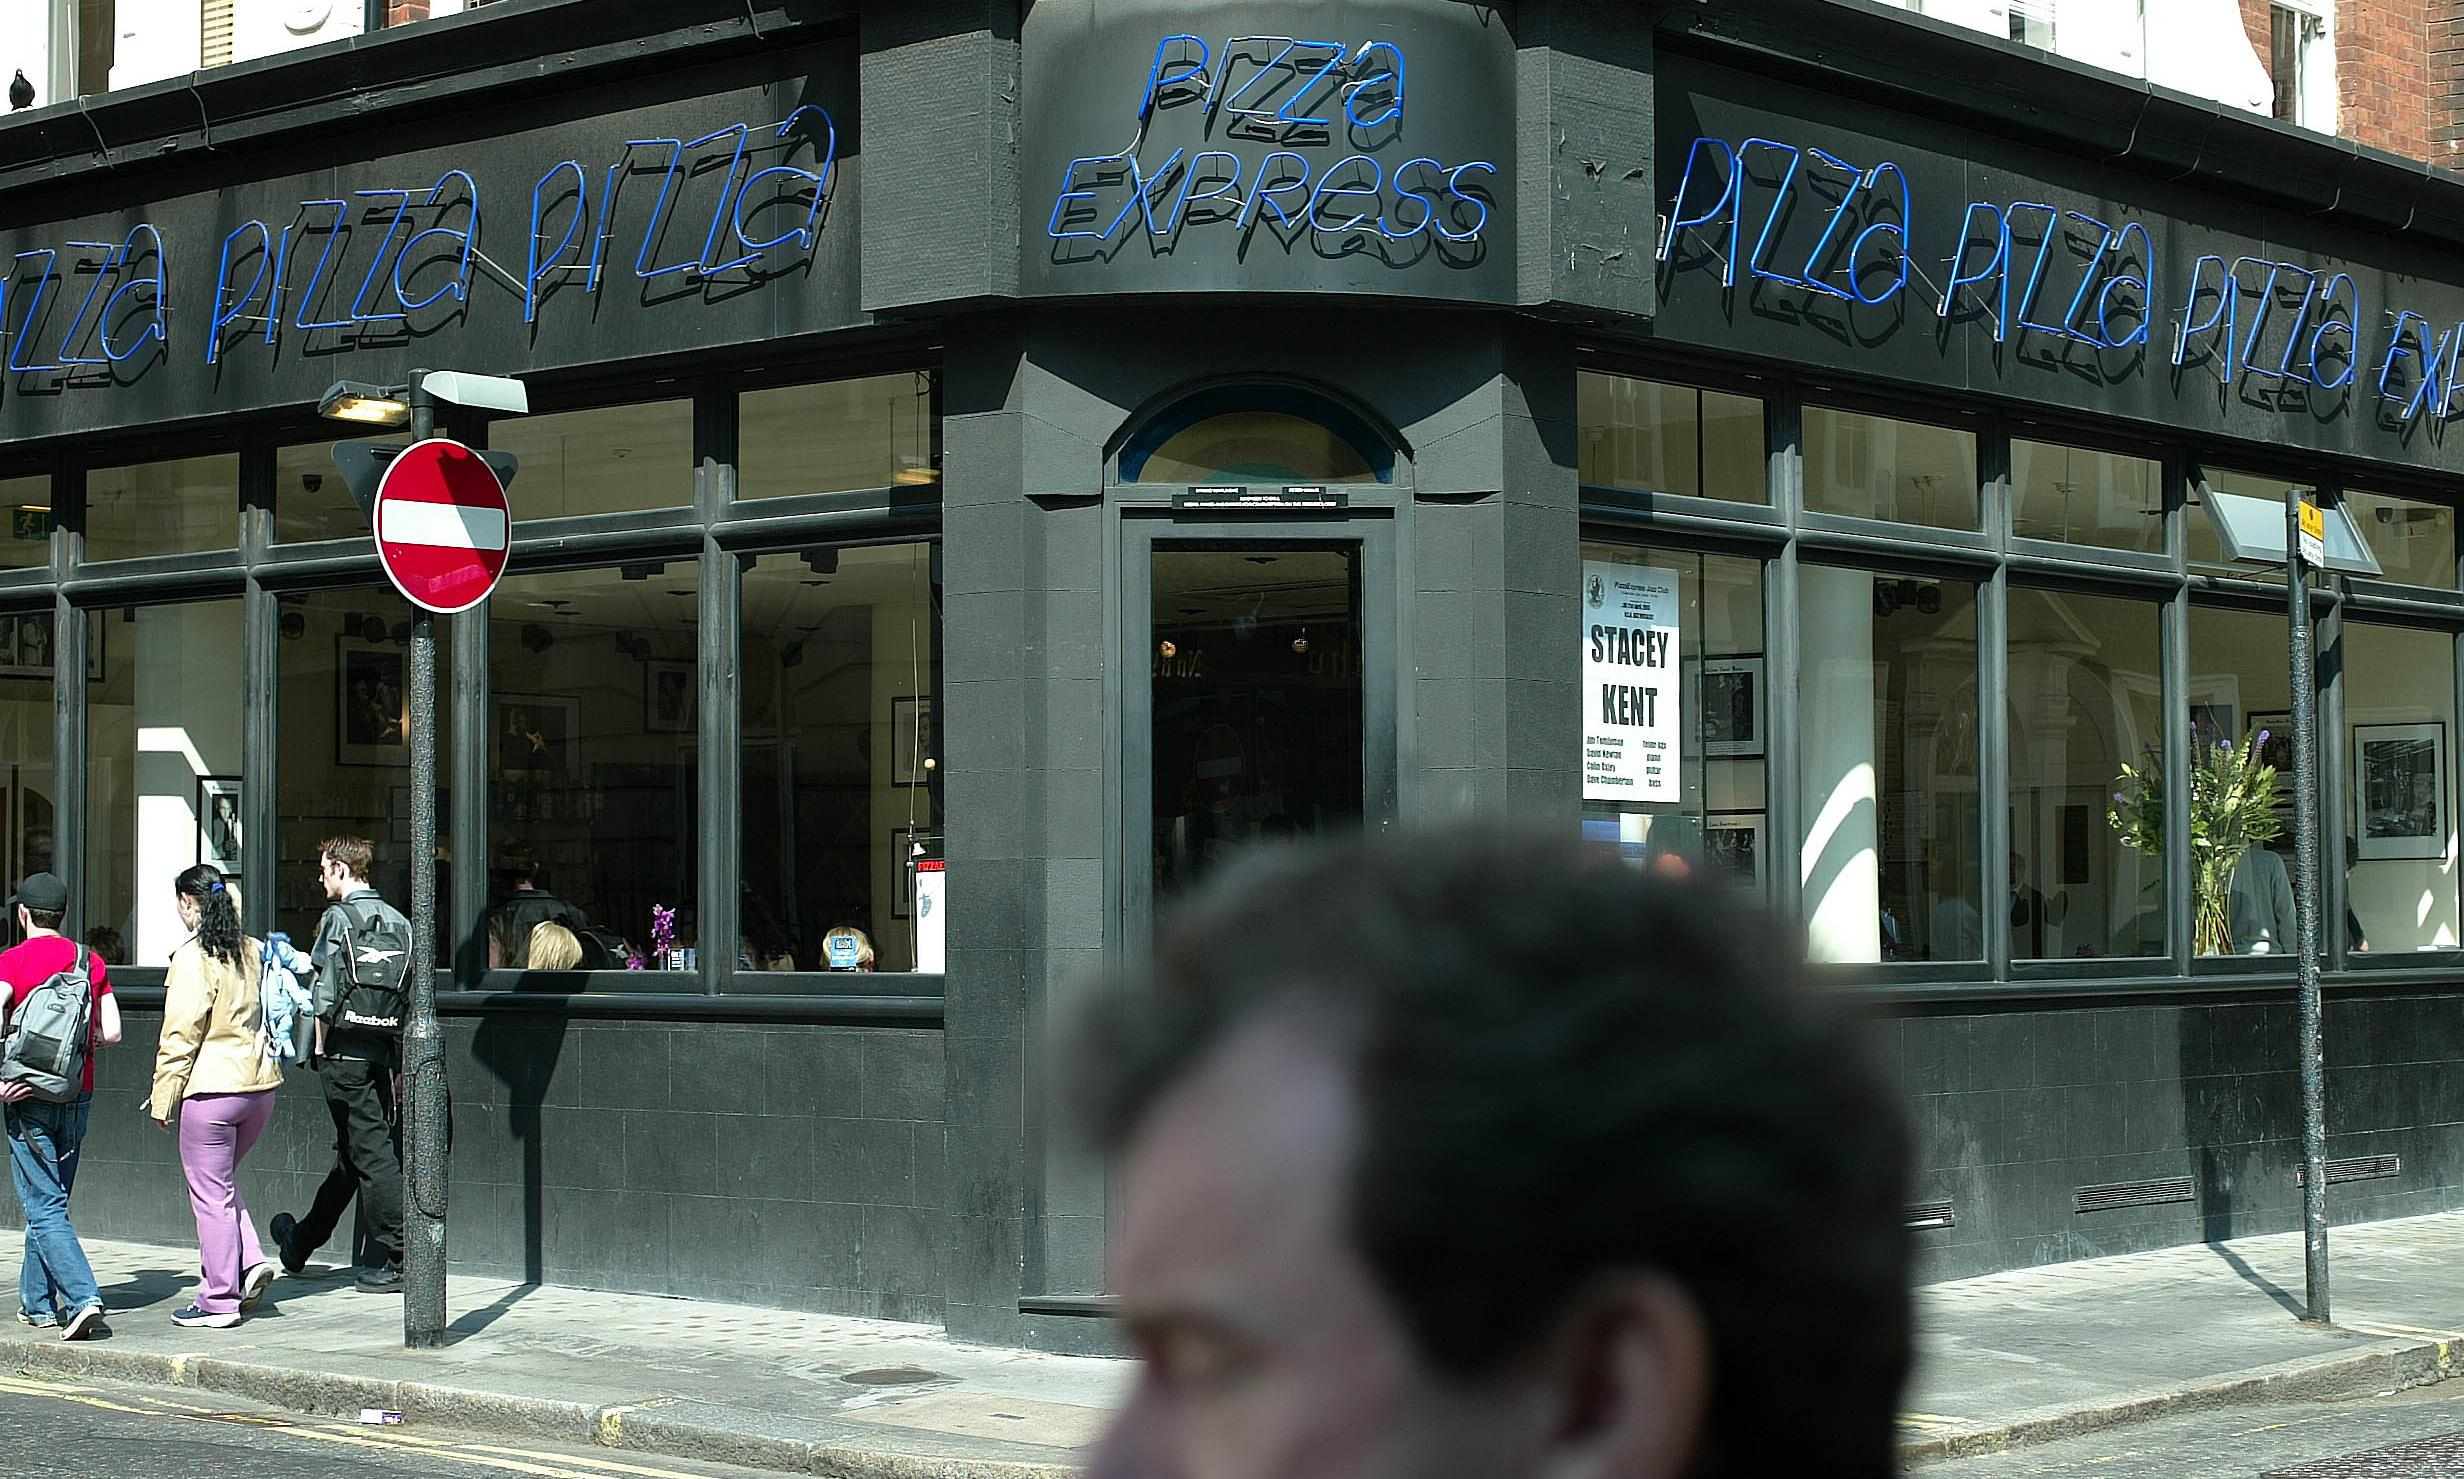 Pizza Express lining up for painful debt restructuring